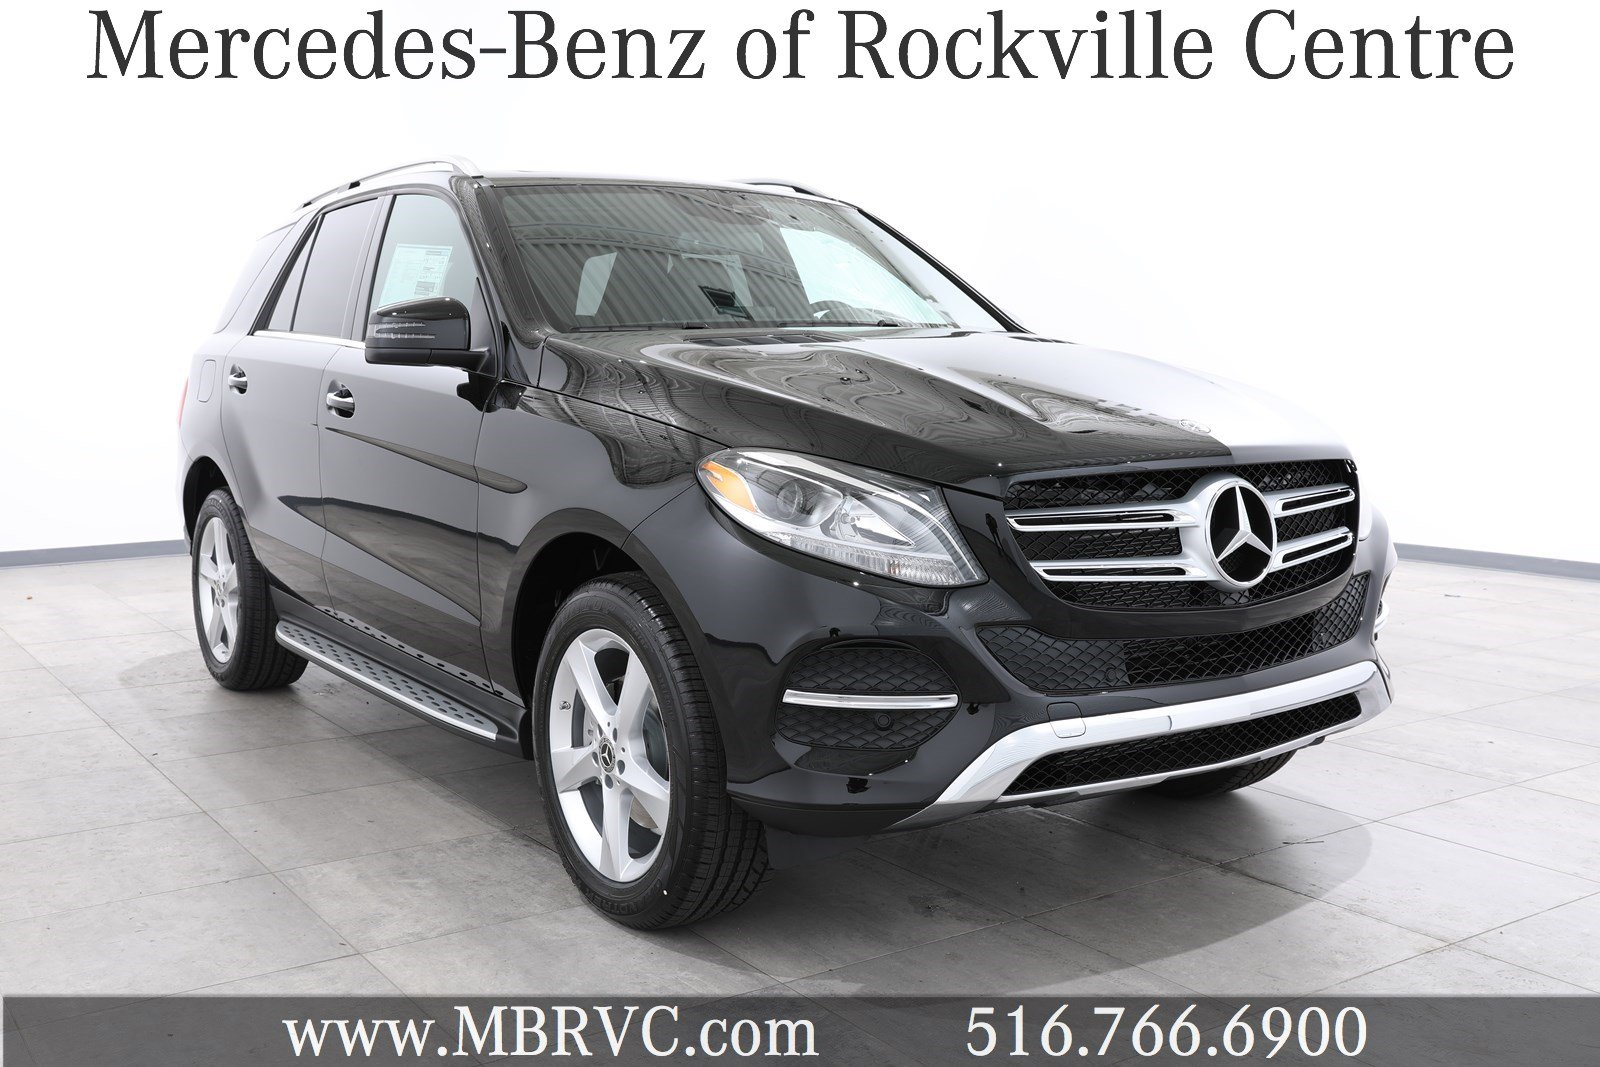 New 2017 mercedes benz gle gle 350 suv in rockville centre for Mercedes benz rockville centre